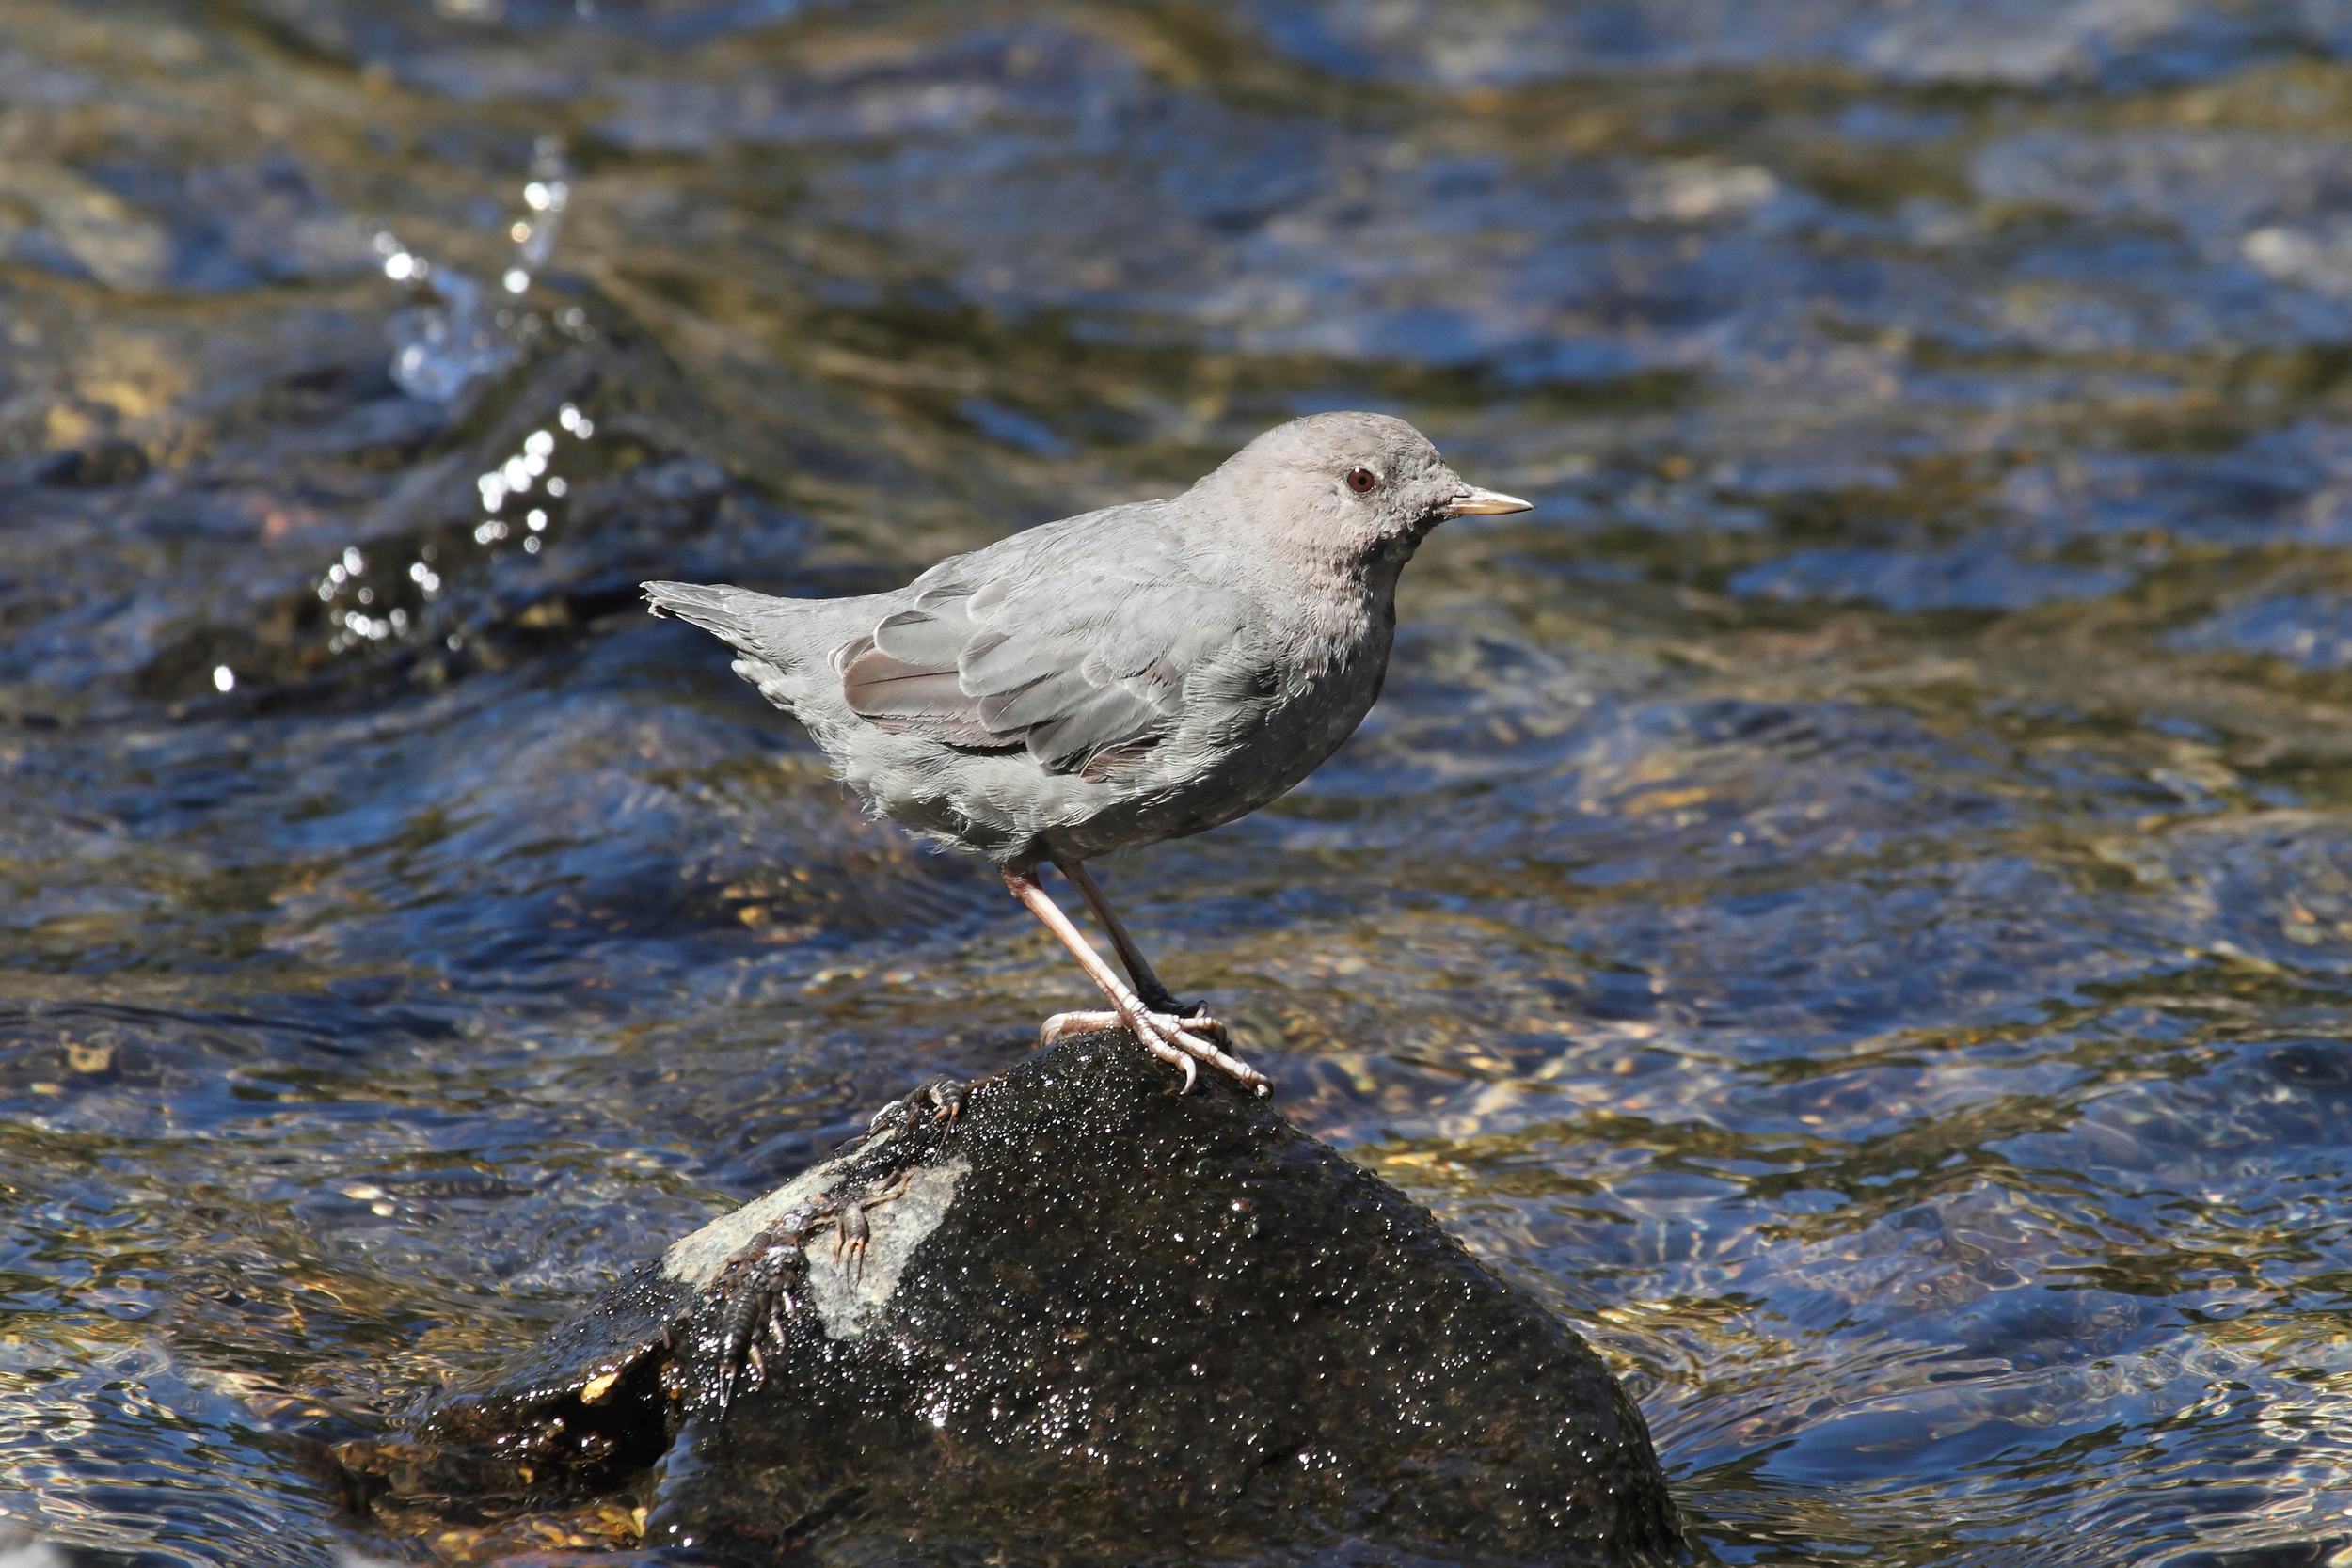 American Dipper ( Cinclus mexicanus ) is a torrent species living in cold, fast-flowing streams, where it feeds on aquatic insects. It swims actively and nests behind waterfalls.